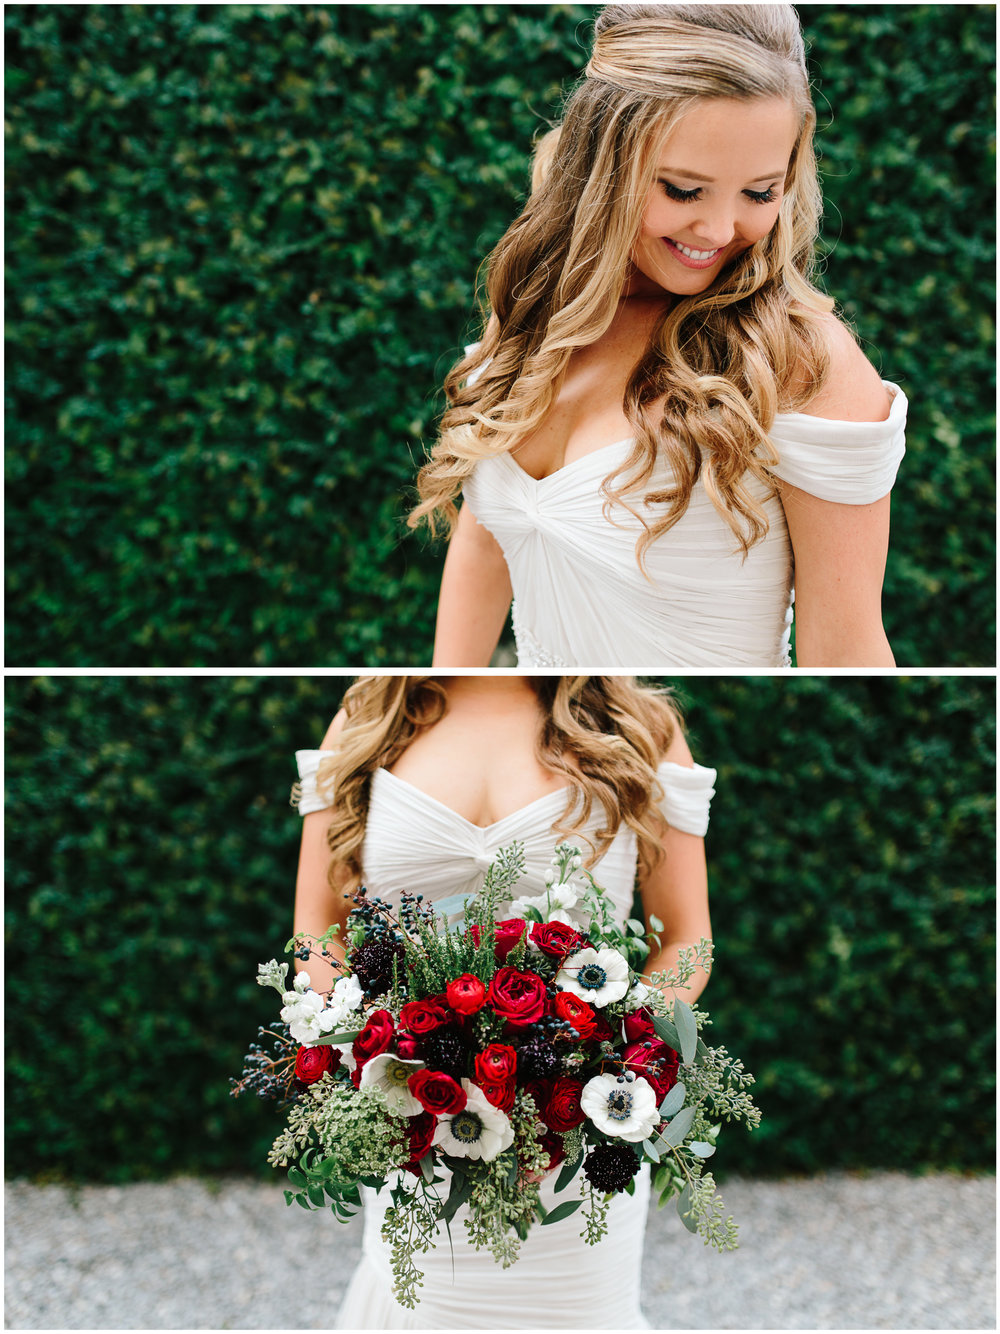 Blushing bride with her loose curls and deep red bridal bouquet